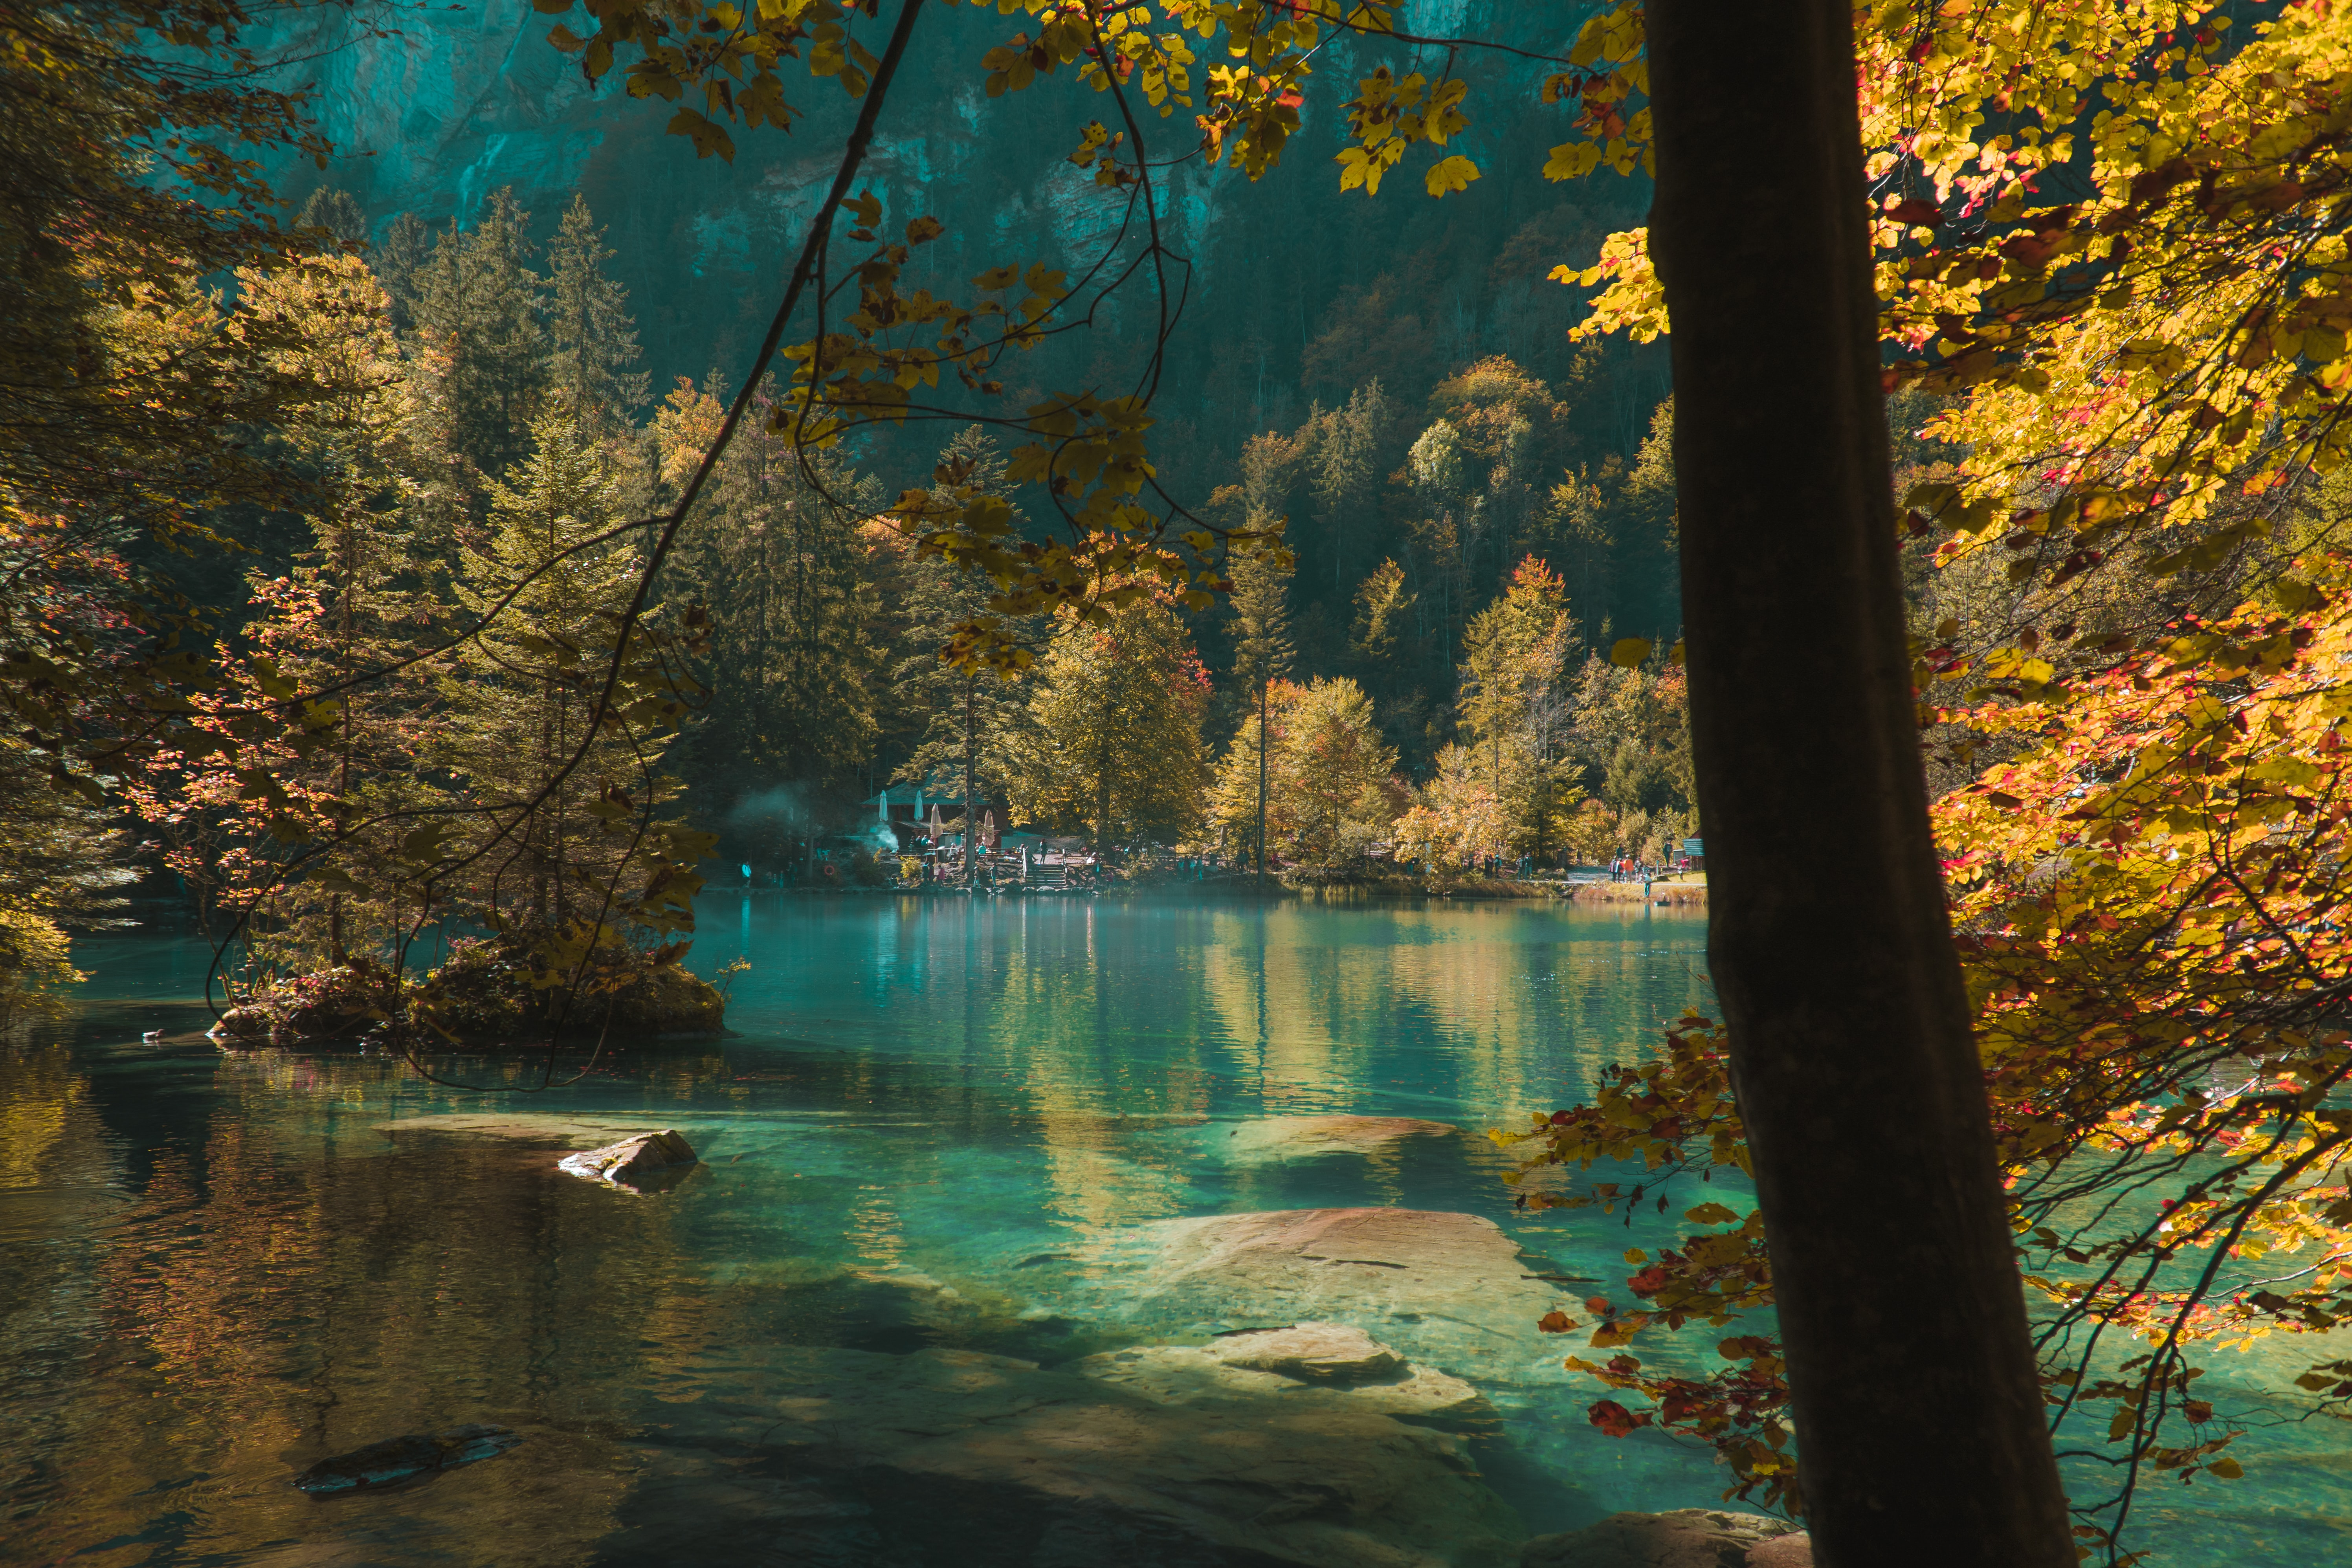 Blausee, Lakes in Switzerland